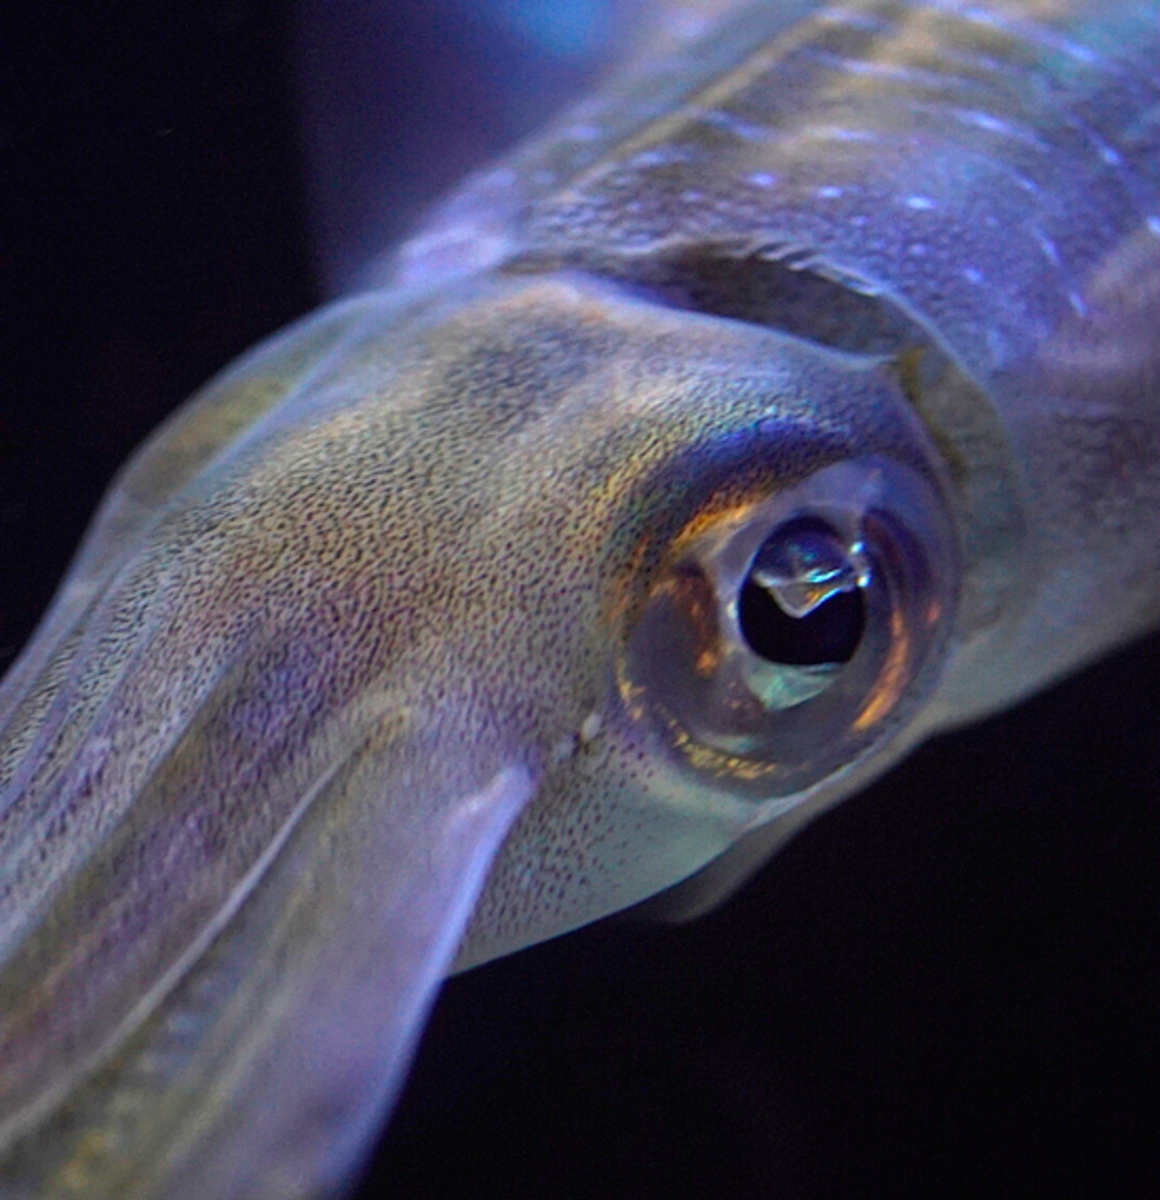 Cephalopods have large eyes and brains